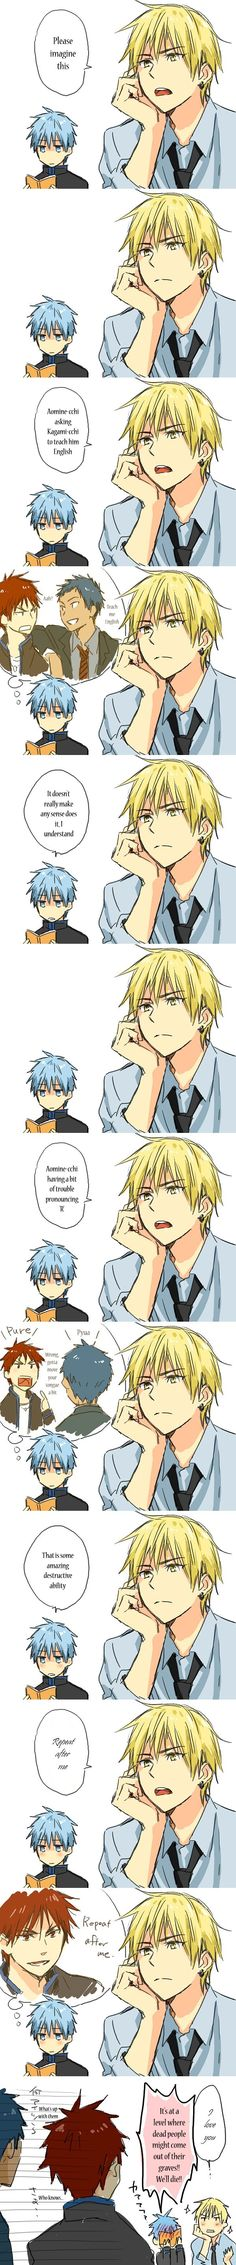 Aww, Kuroko's blush! XD Kise's adorable here, too... ~w~ though i didn't fully understood it lol